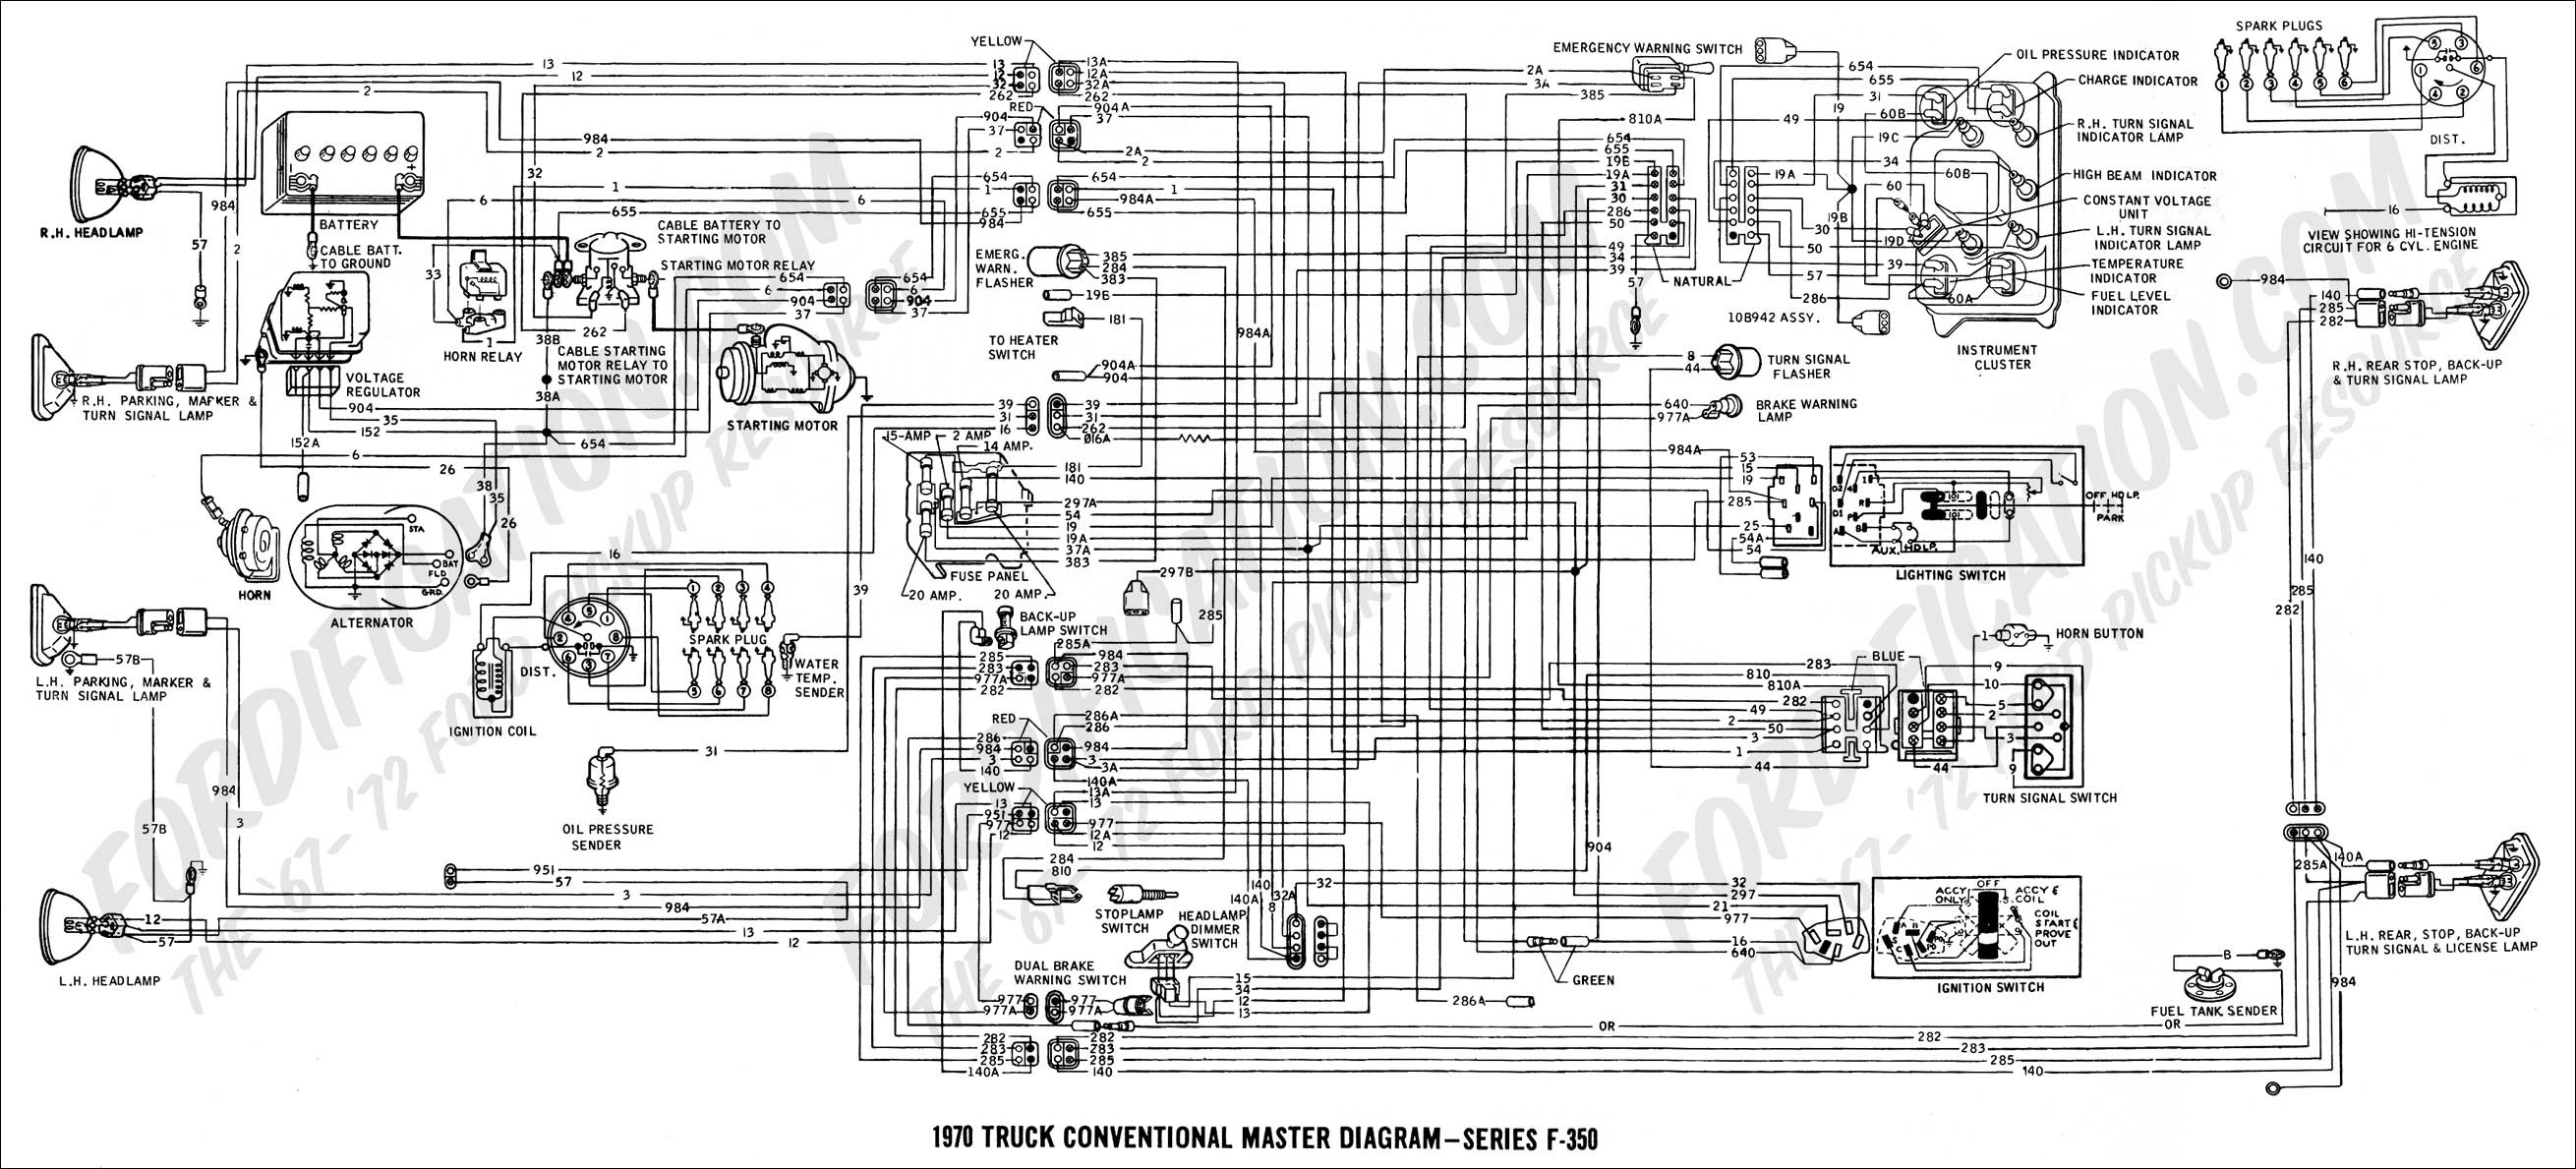 2002 Saturn Vue Engine Diagram Iwak Kutok Saturn Sl1 Engine Diagram Wiring Info • Of 2002 Saturn Vue Engine Diagram